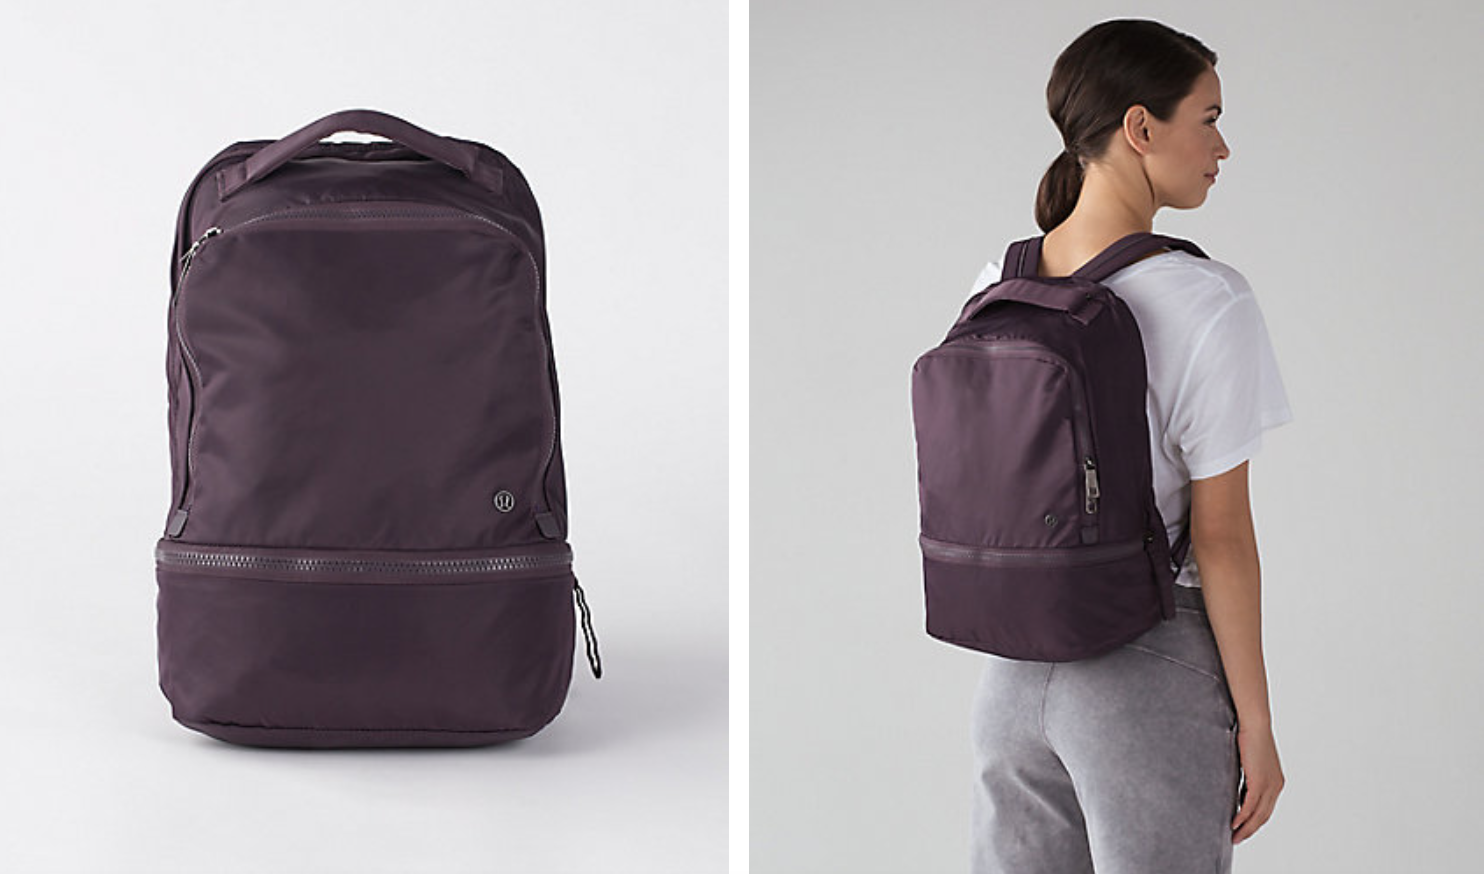 https://api.shopstyle.com/action/apiVisitRetailer?url=https%3A%2F%2Fshop.lululemon.com%2Fp%2Fbags%2FCity-Adventurer-Backpack%2F_%2Fprod8540278%3Frcnt%3D60%26N%3D1z13ziiZ7z5%26cnt%3D61%26color%3DLW9AX9S_028604&site=www.shopstyle.ca&pid=uid6784-25288972-7